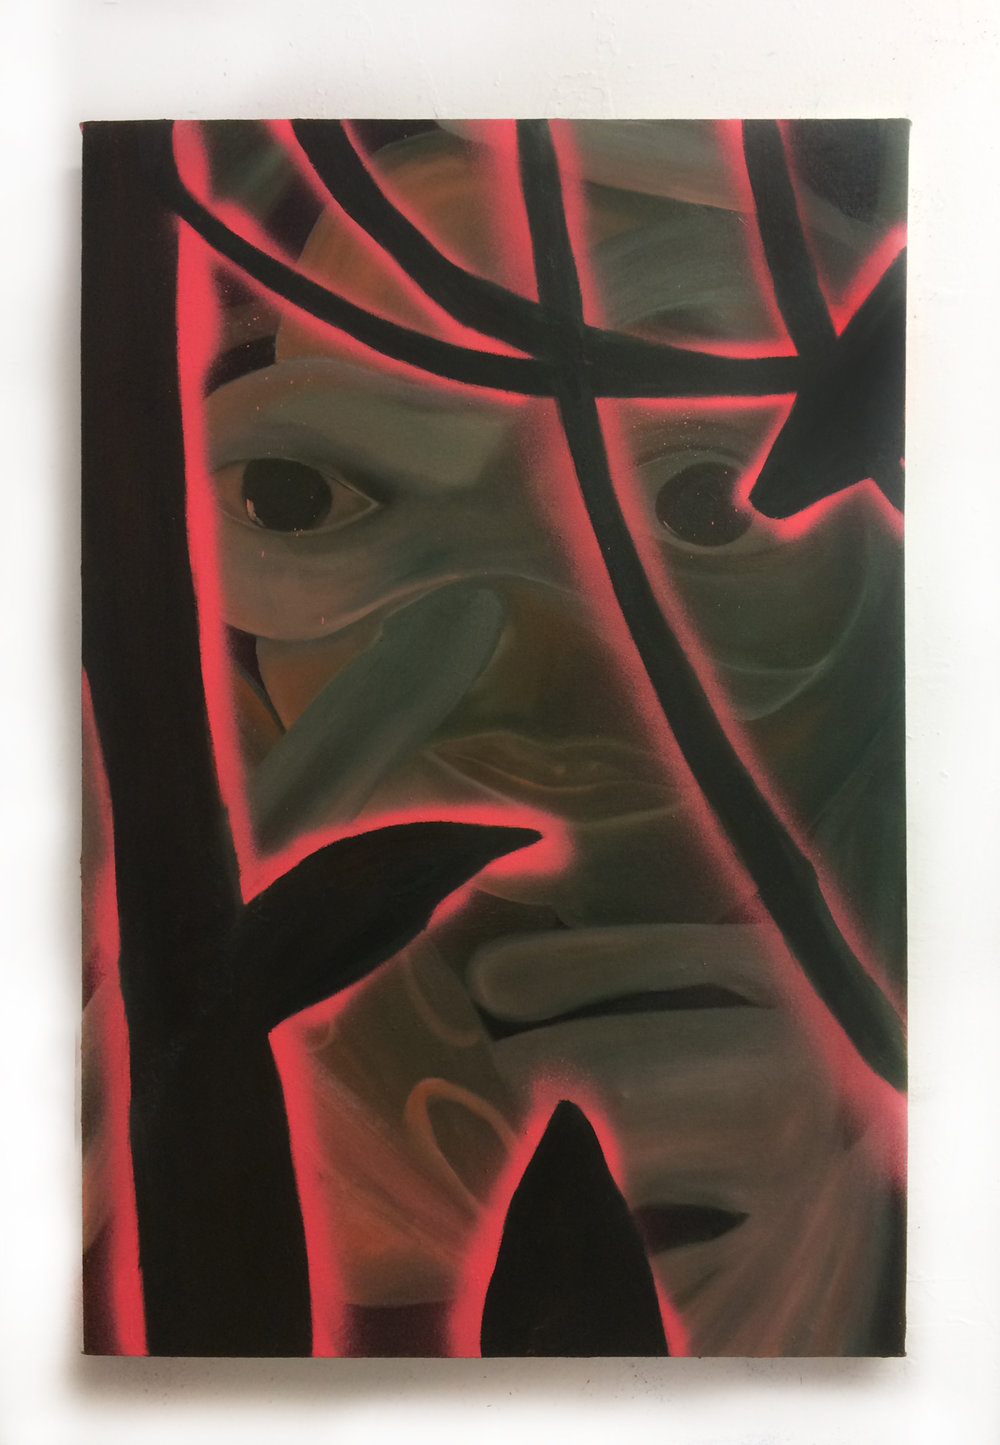 Claire Scherzinger, Afterburner--no spirit lingering, oil and spray paint on canvas, 36 x 24 in, 2016.